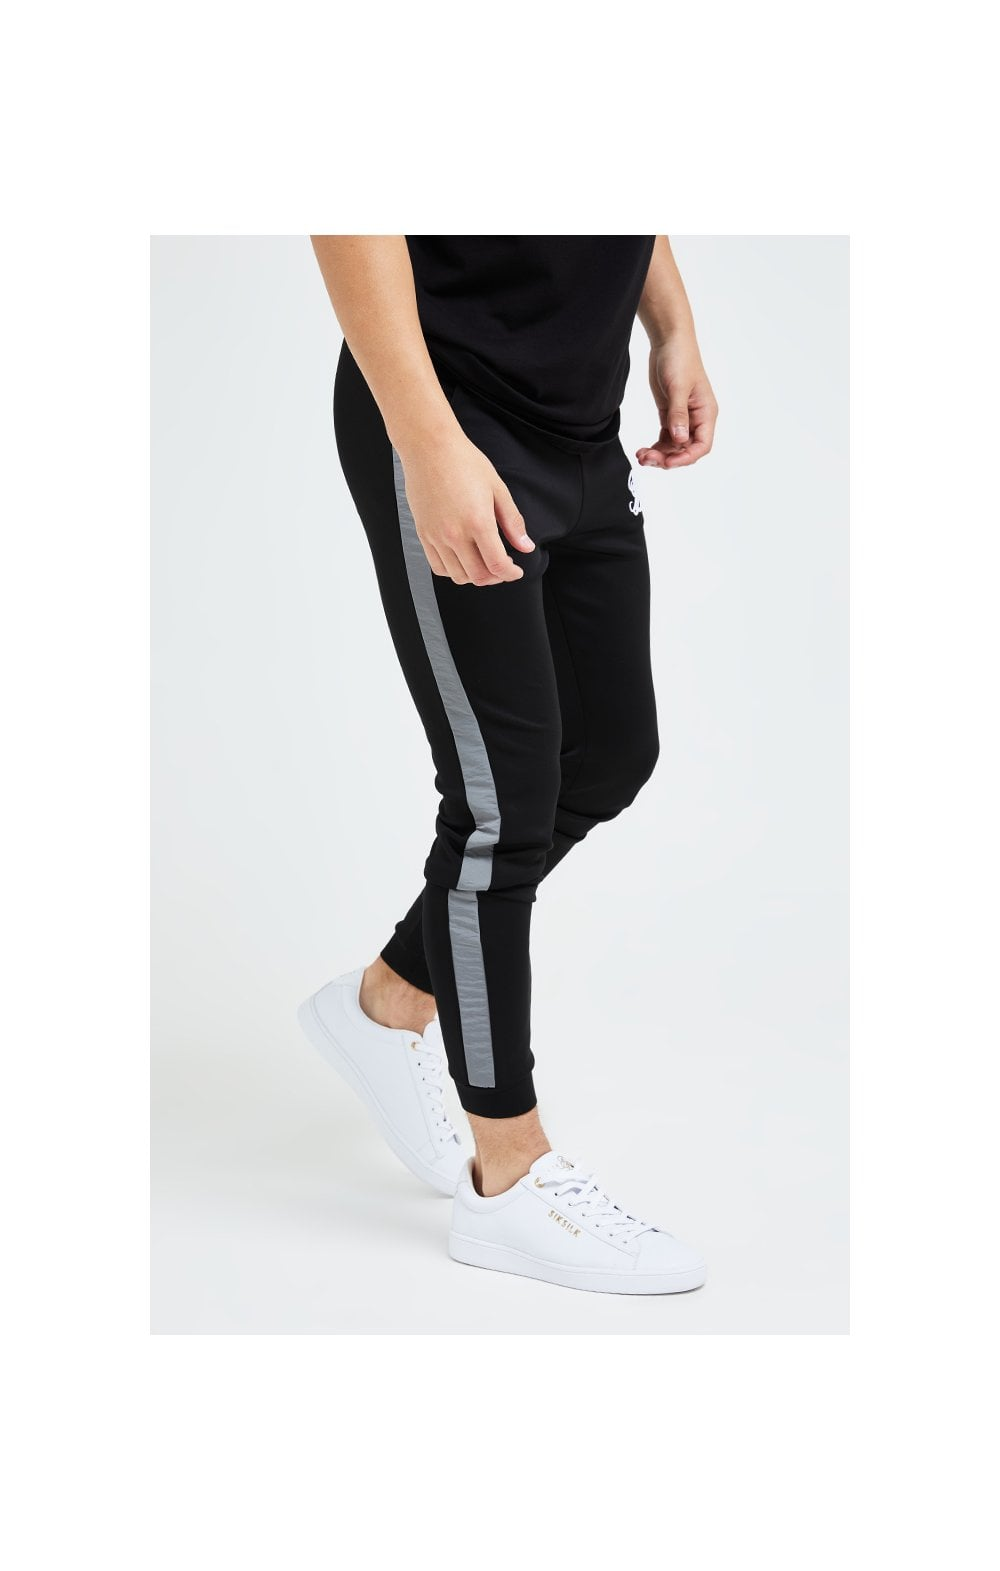 Illusive London Hybrid Joggers - Black & Grey (3)